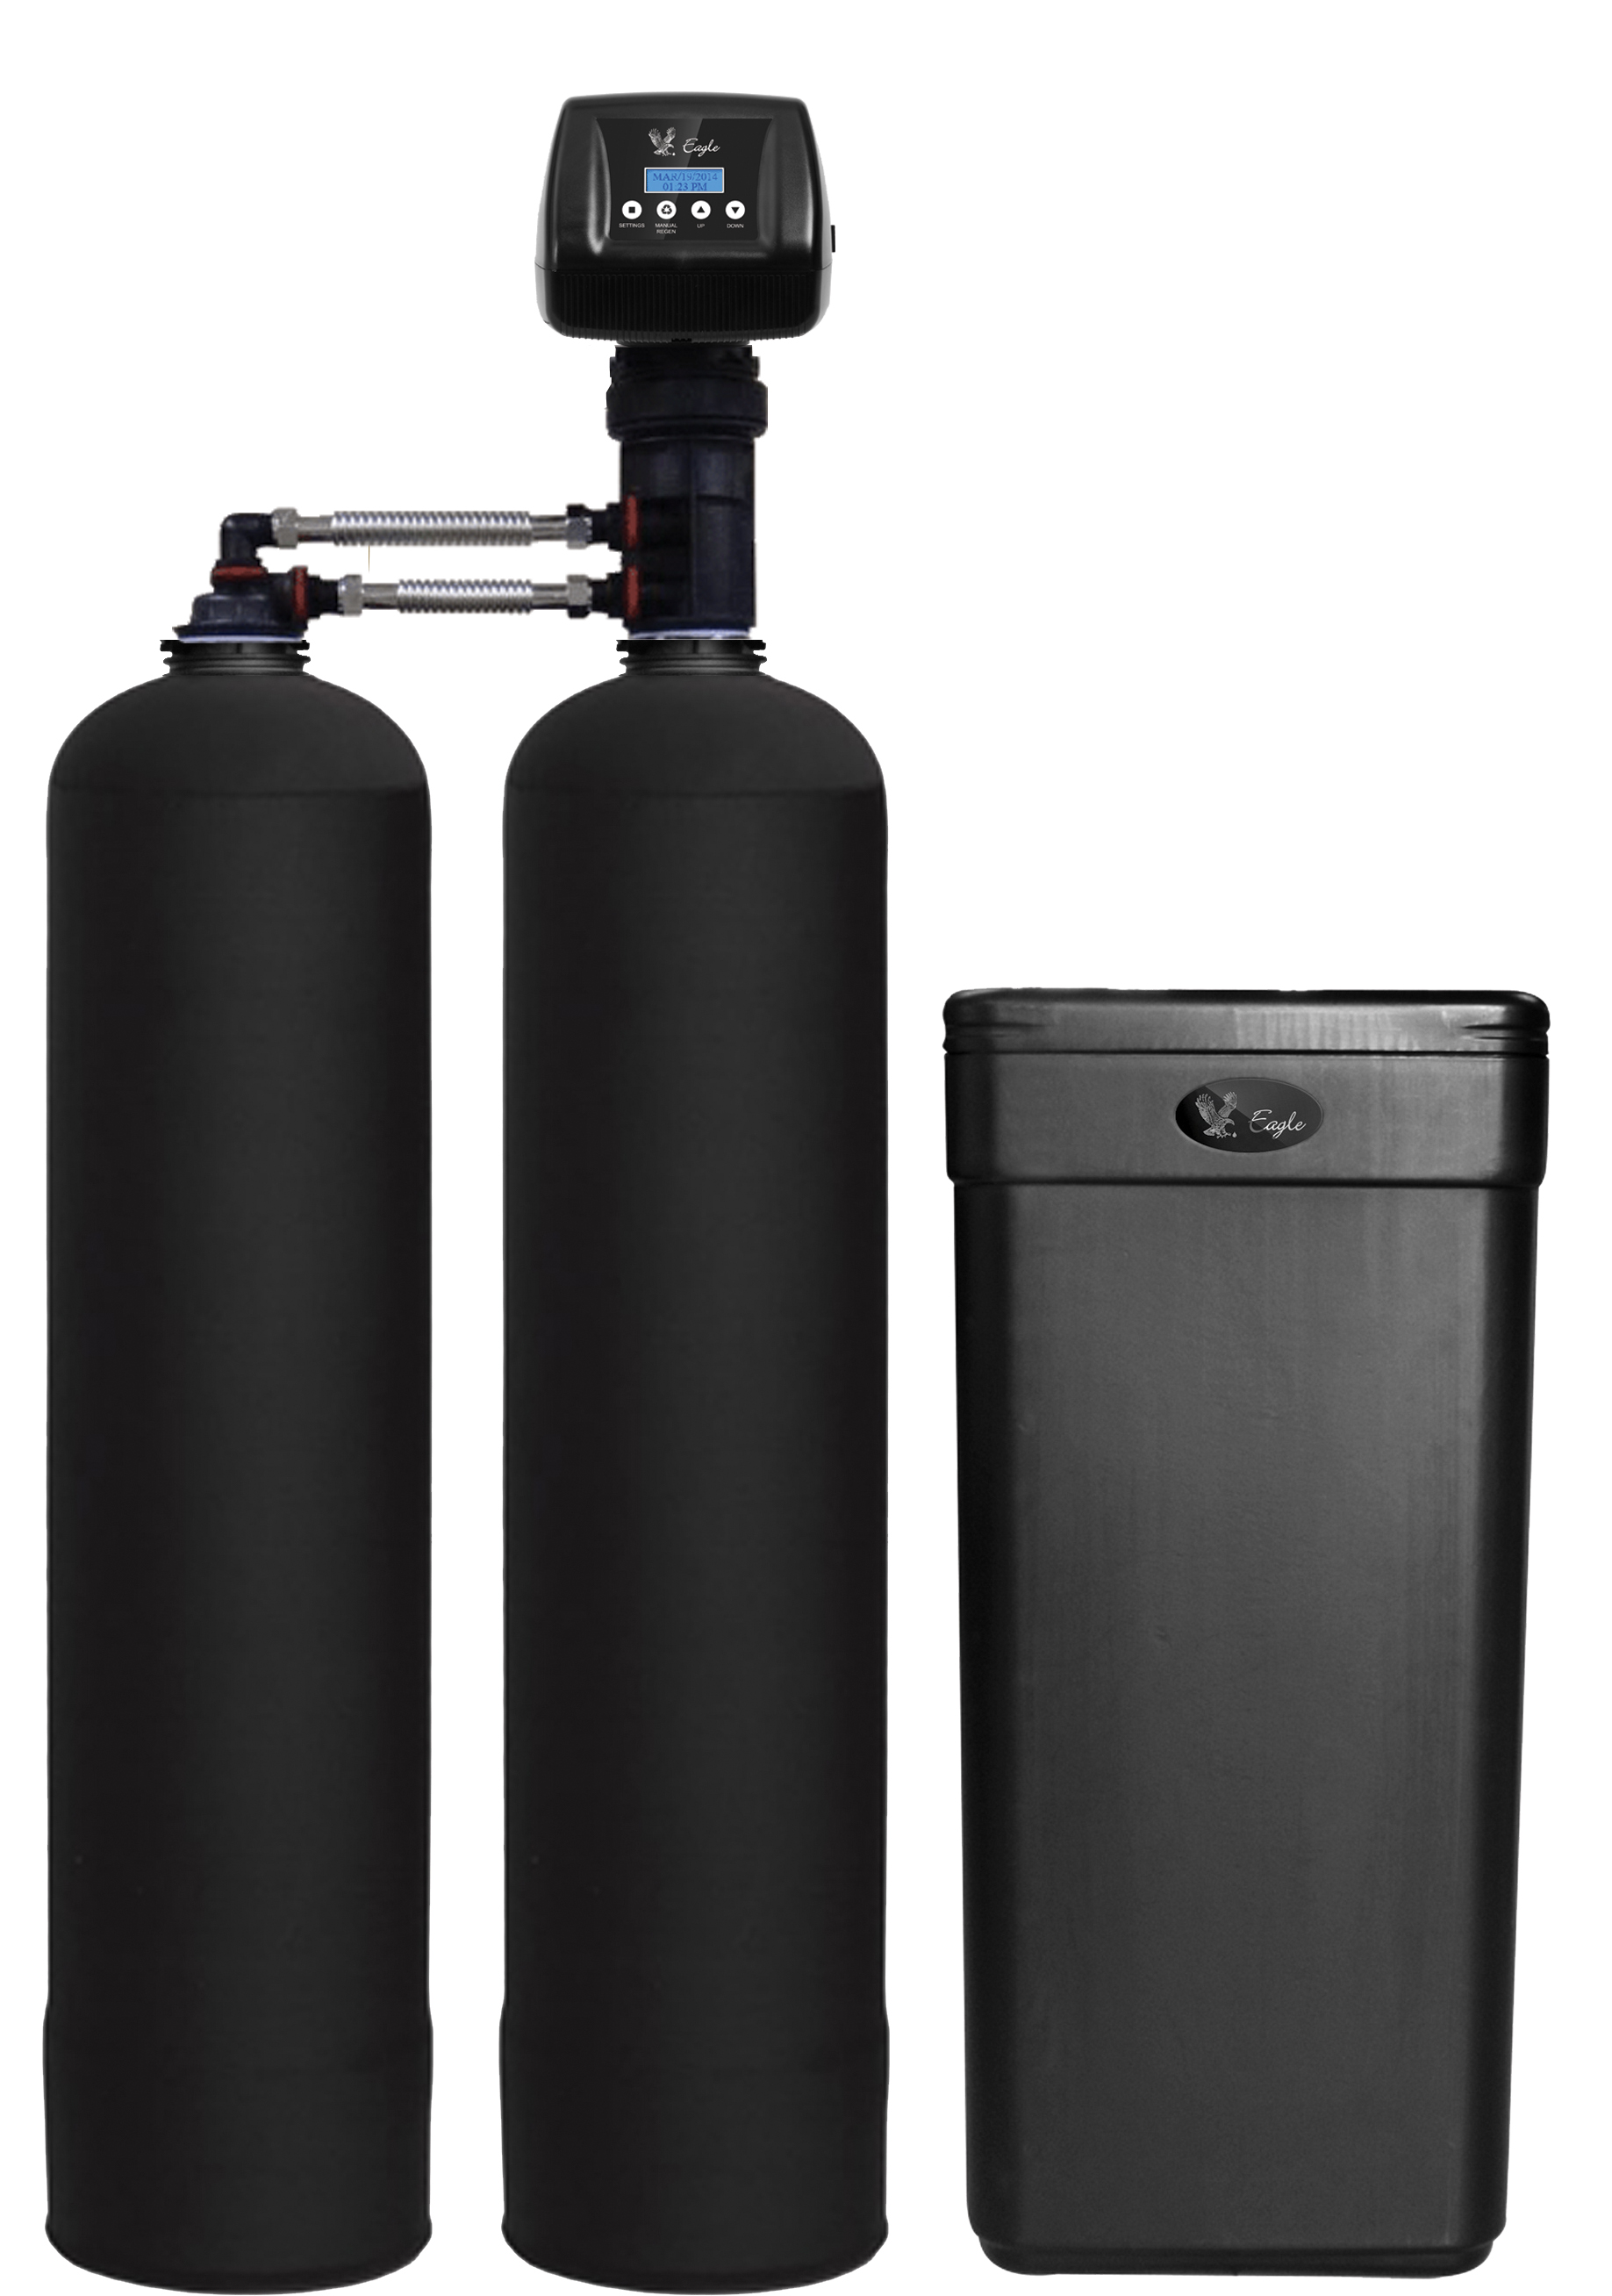 Eagle Platinum Twin Tank water treatment system from Gold Water Groupin Ontario Canada.